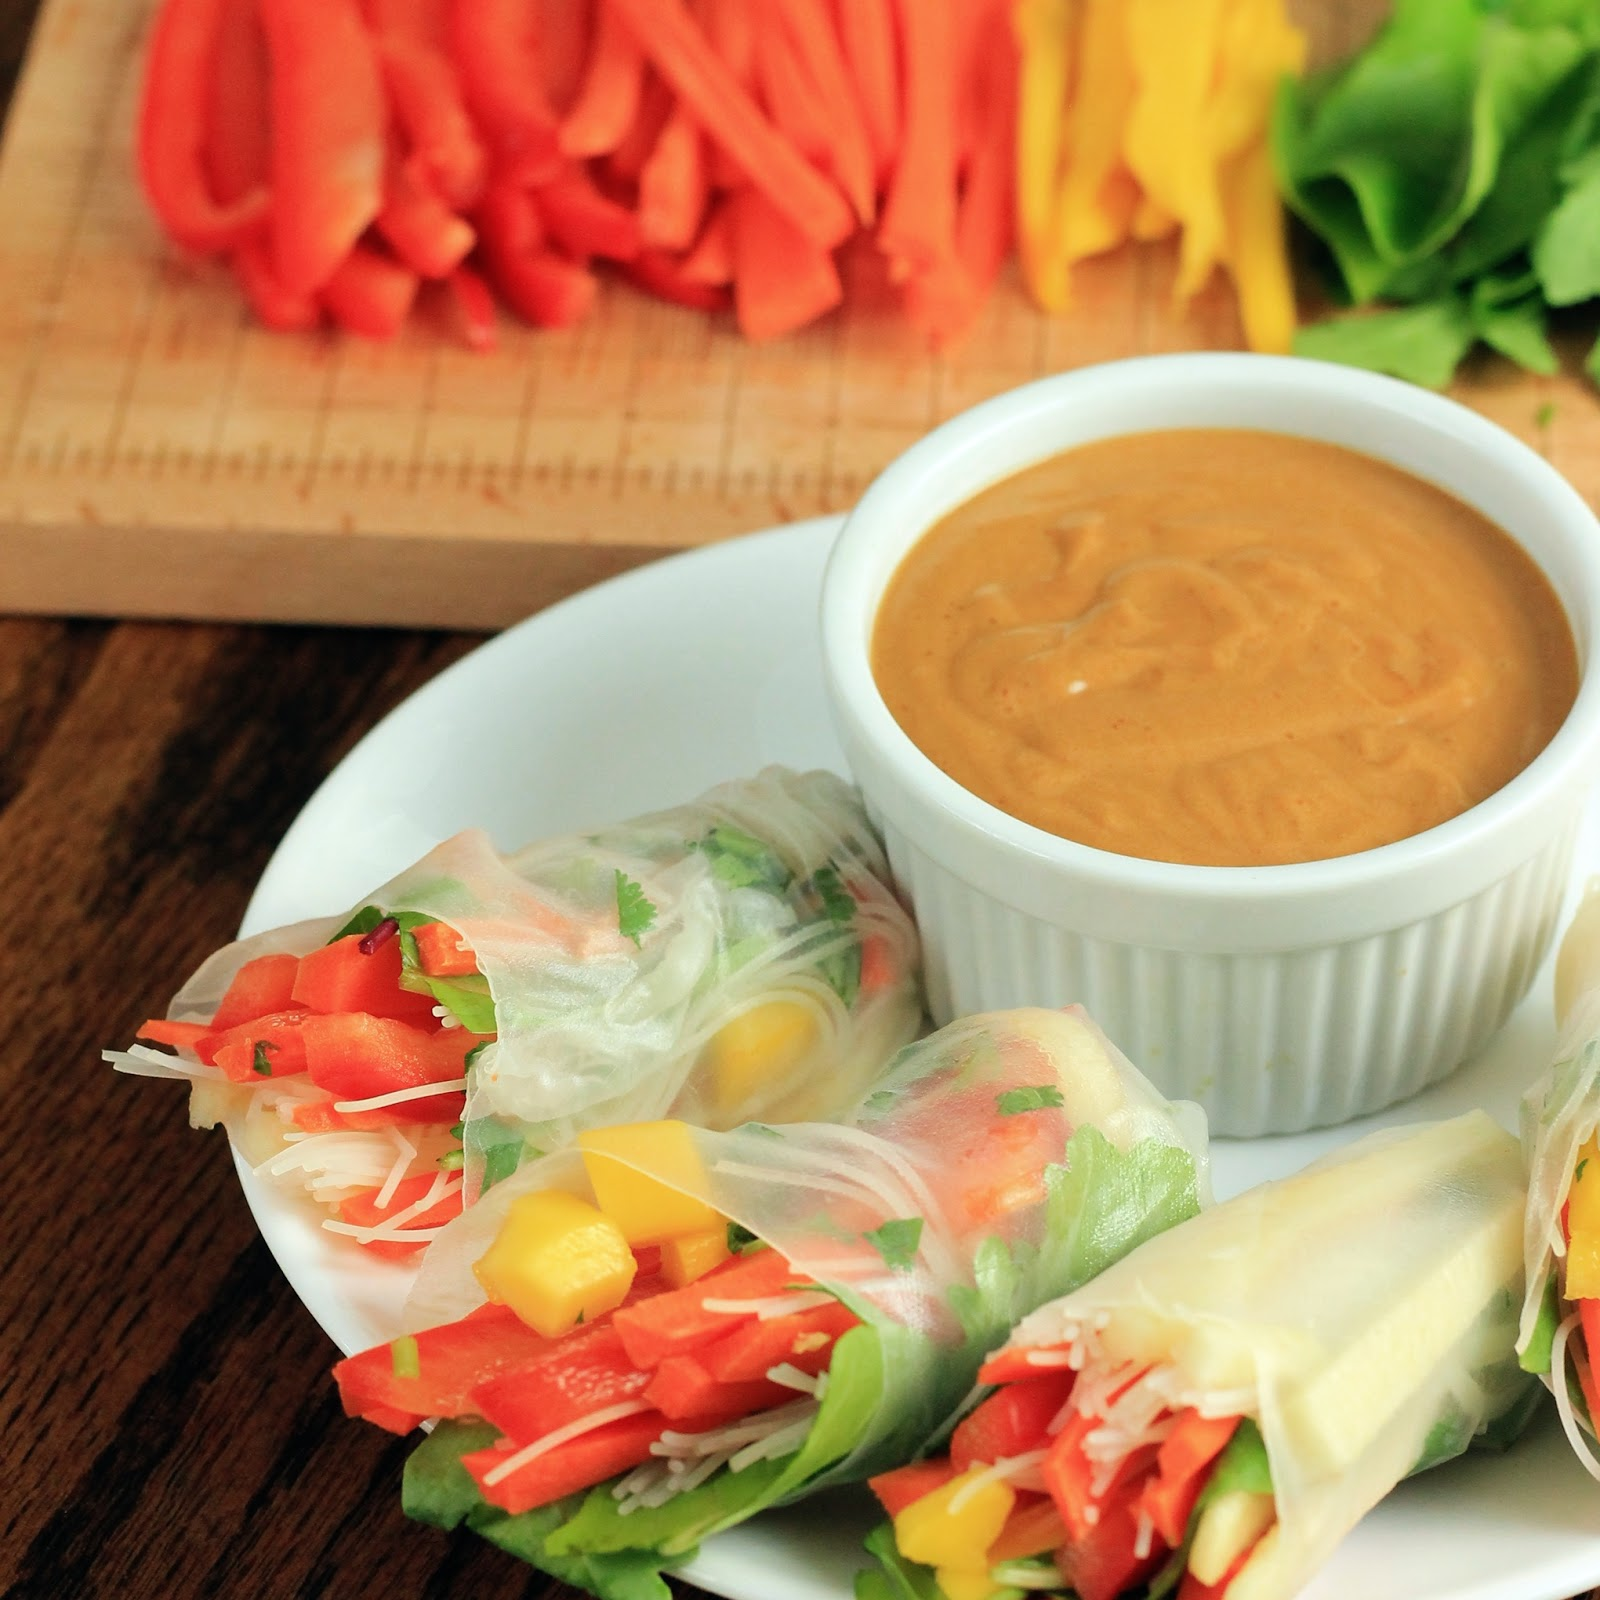 ... Happy: Vegetable Spring Rolls with Spicy Peanut Dipping Sauce